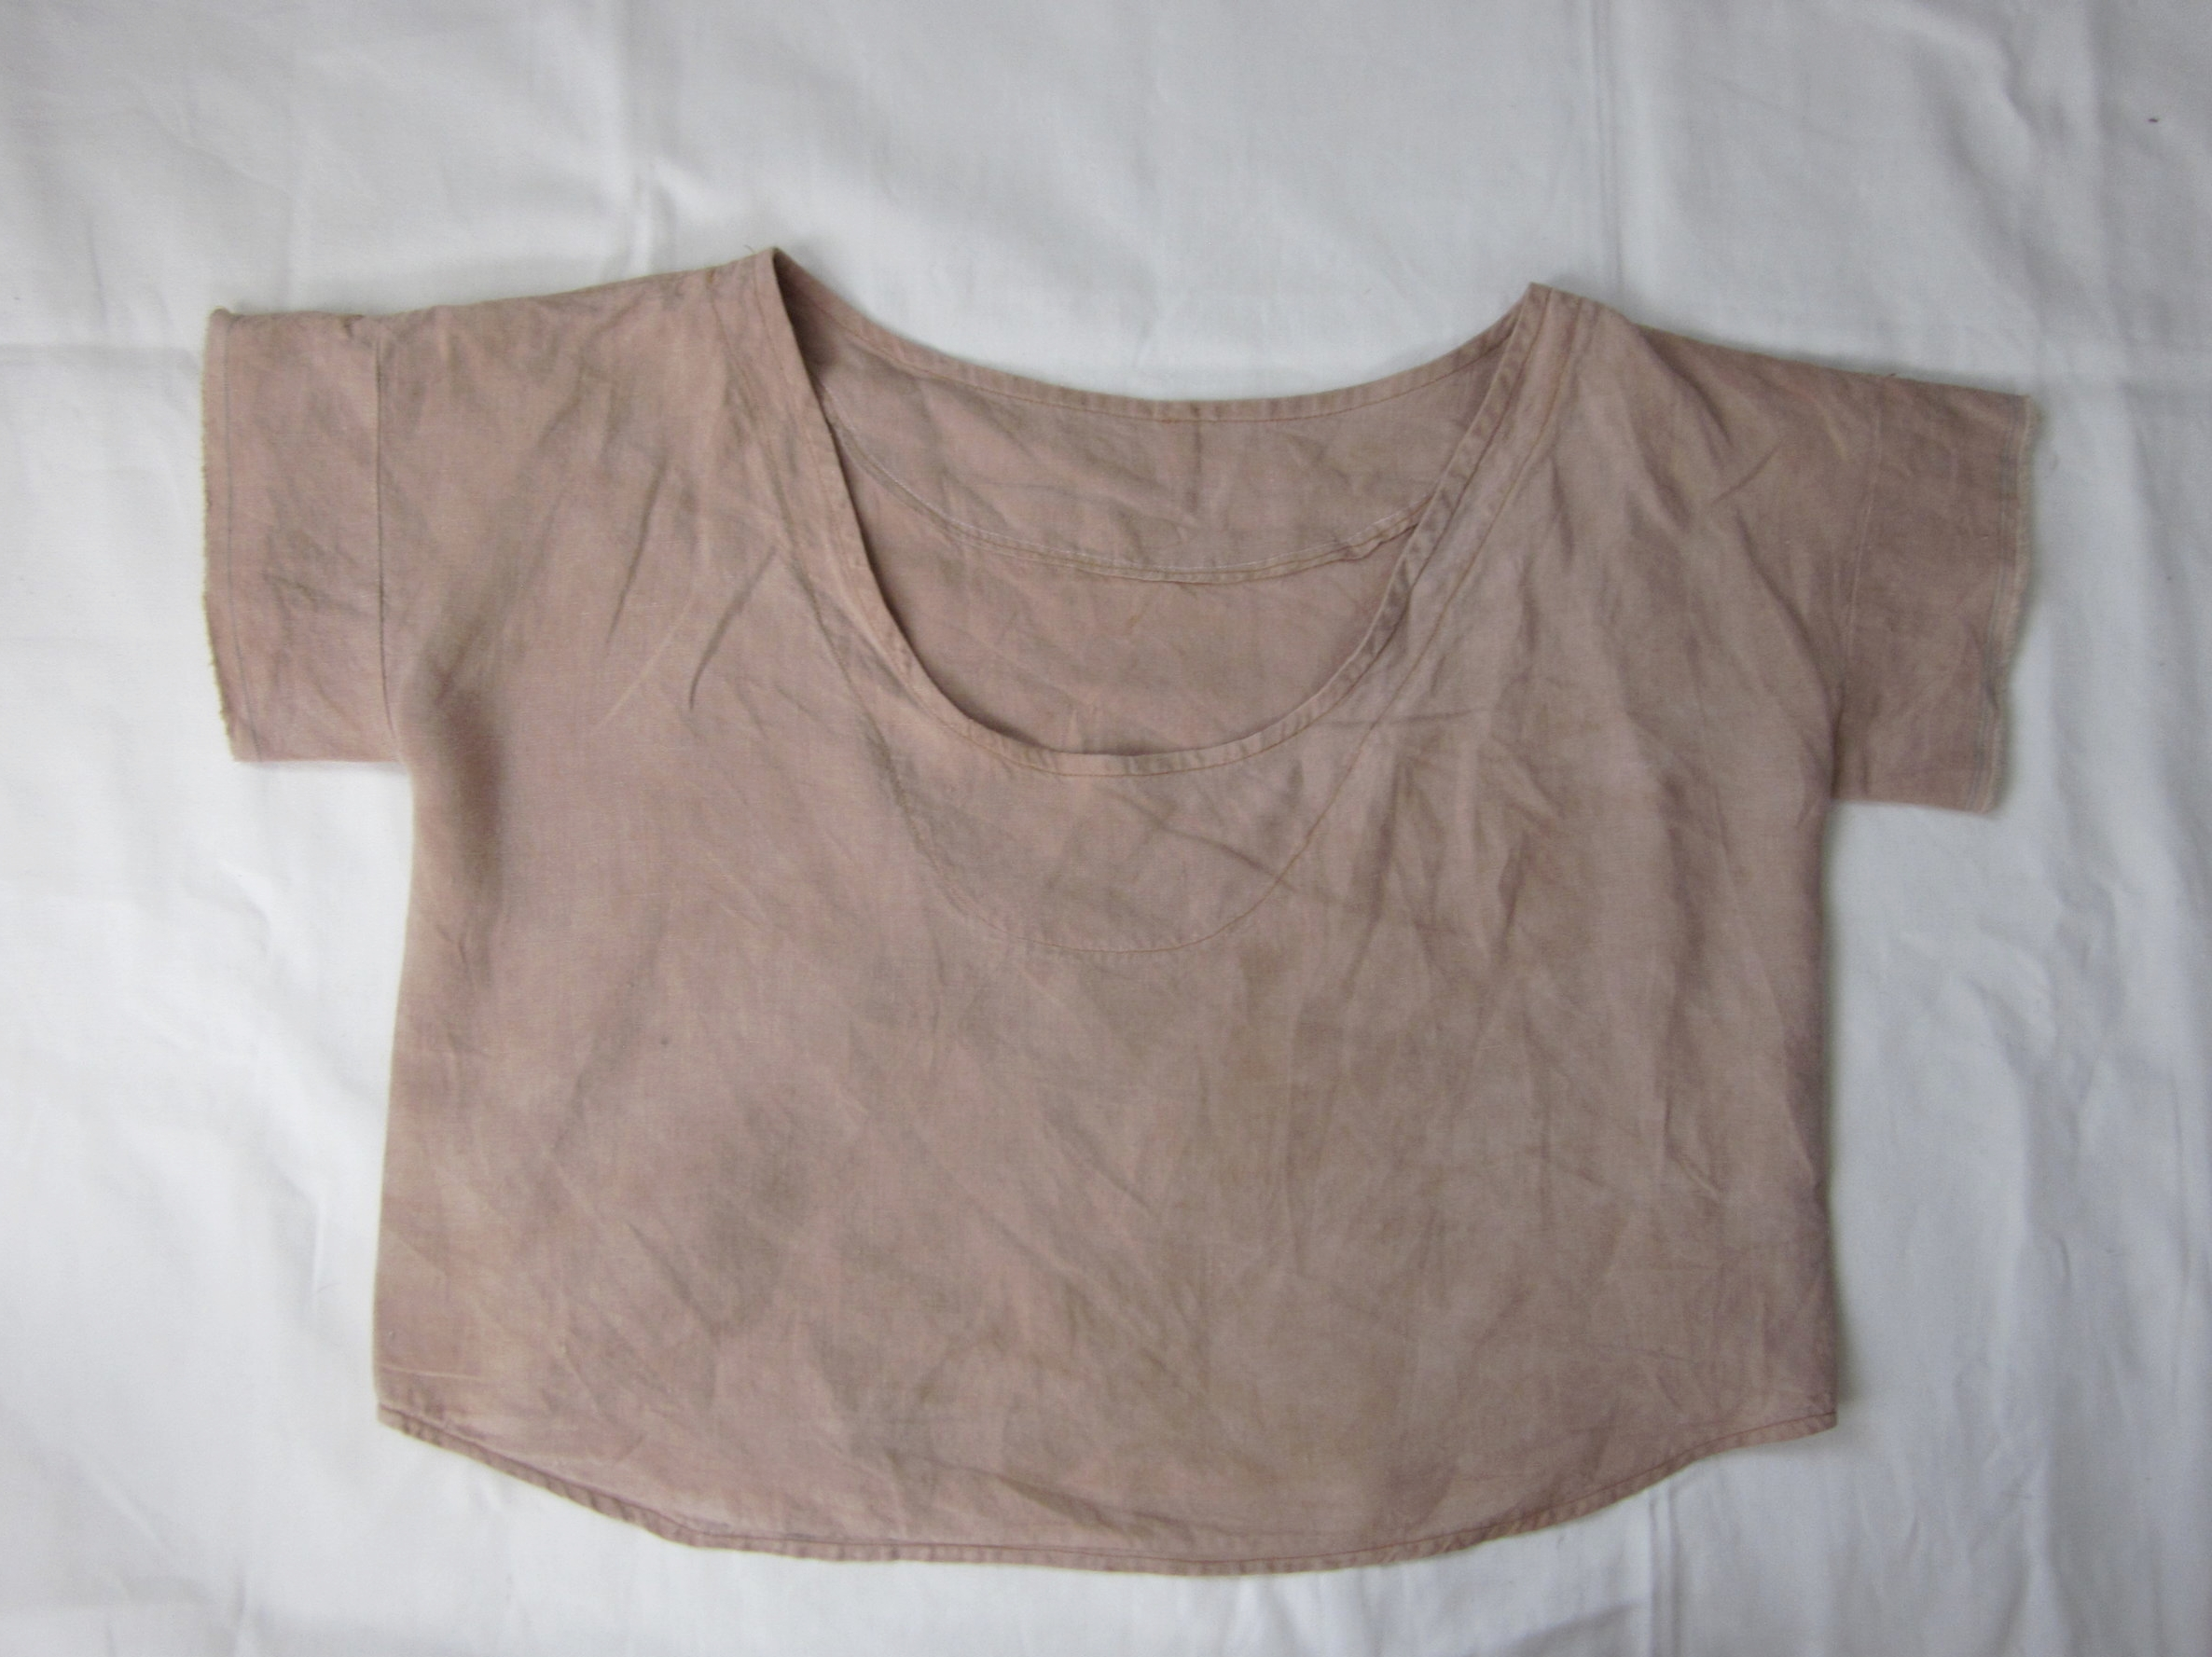 Back, Linen Crop Top Dyed with Avocado Skins